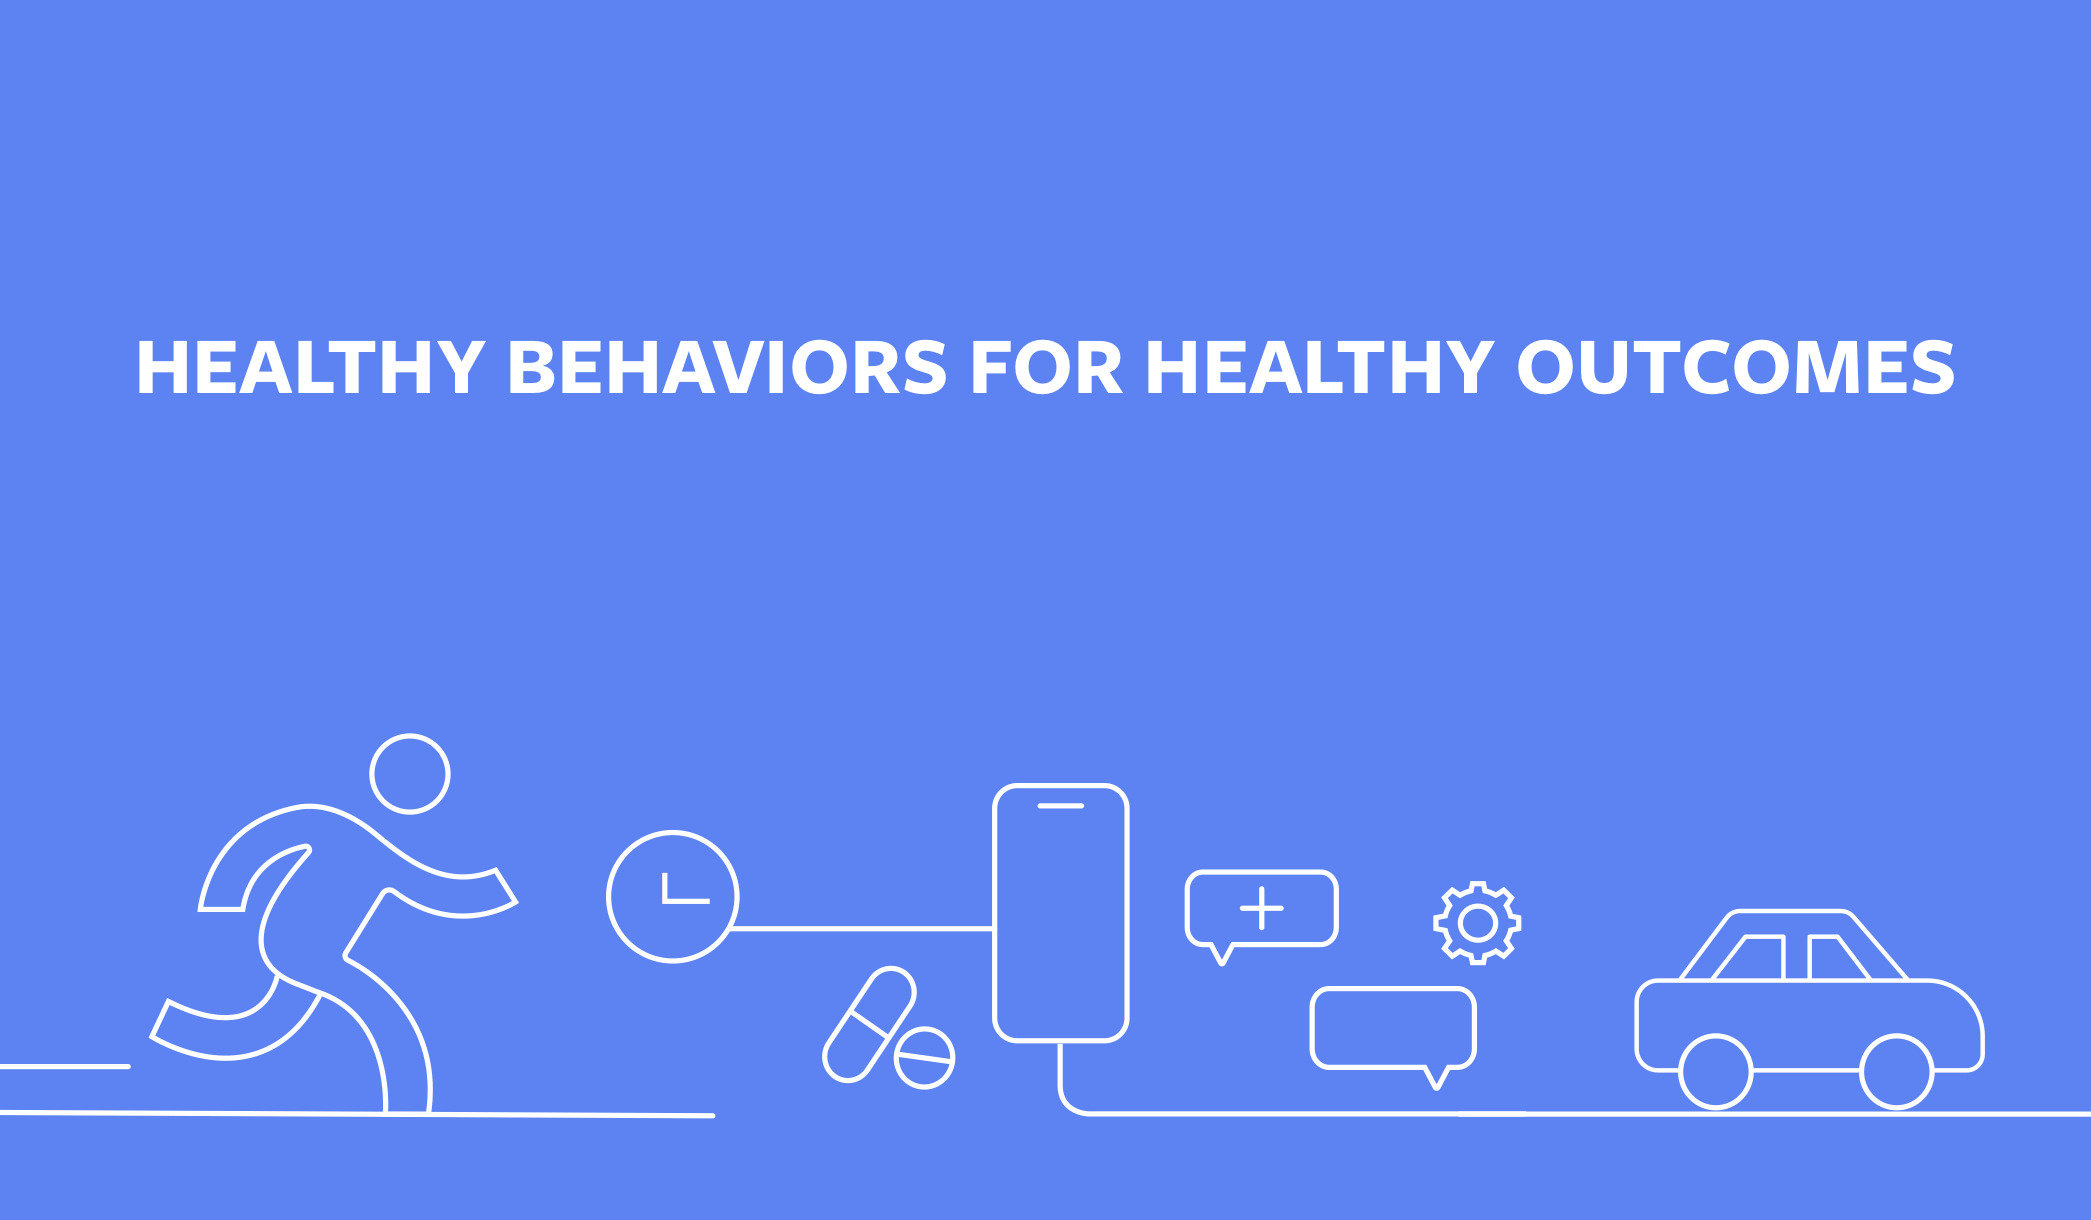 Healthy Behaviors, Healthier Outcomes: addressing the social determinants of health